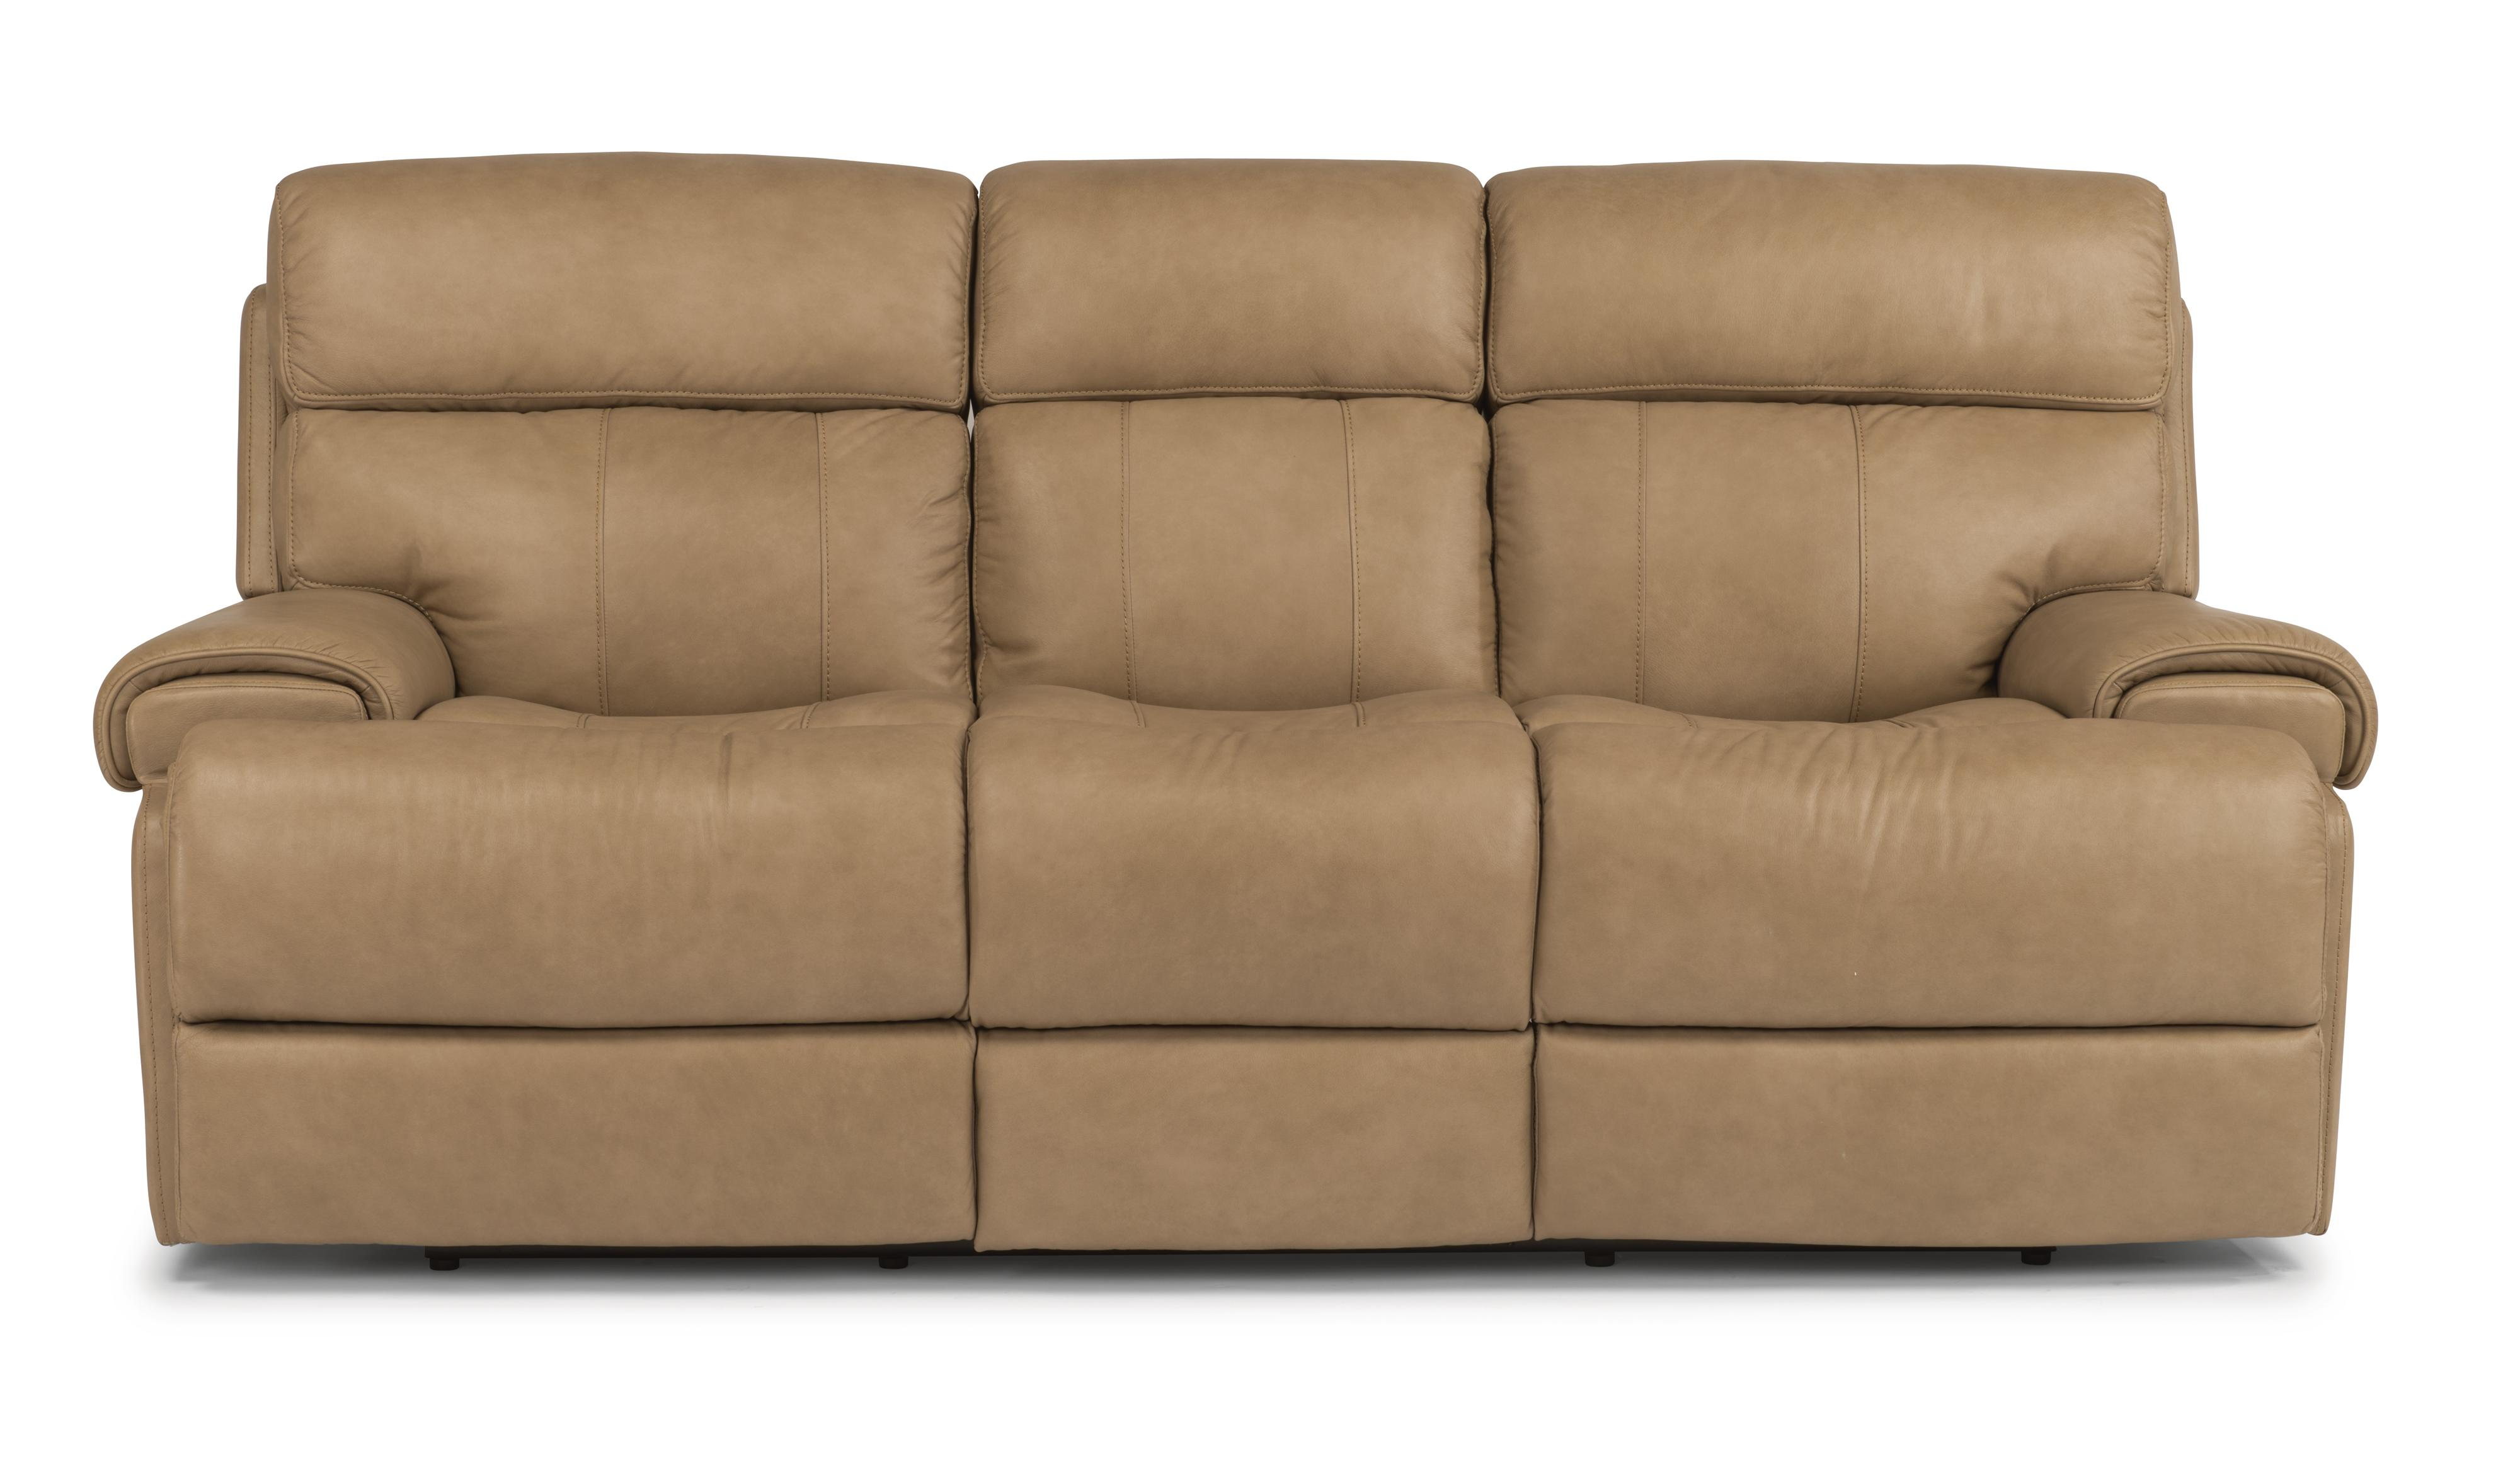 Flexsteel Latitudes-Margot Power Reclining Sofa - Item Number: 1441-62P-832-80